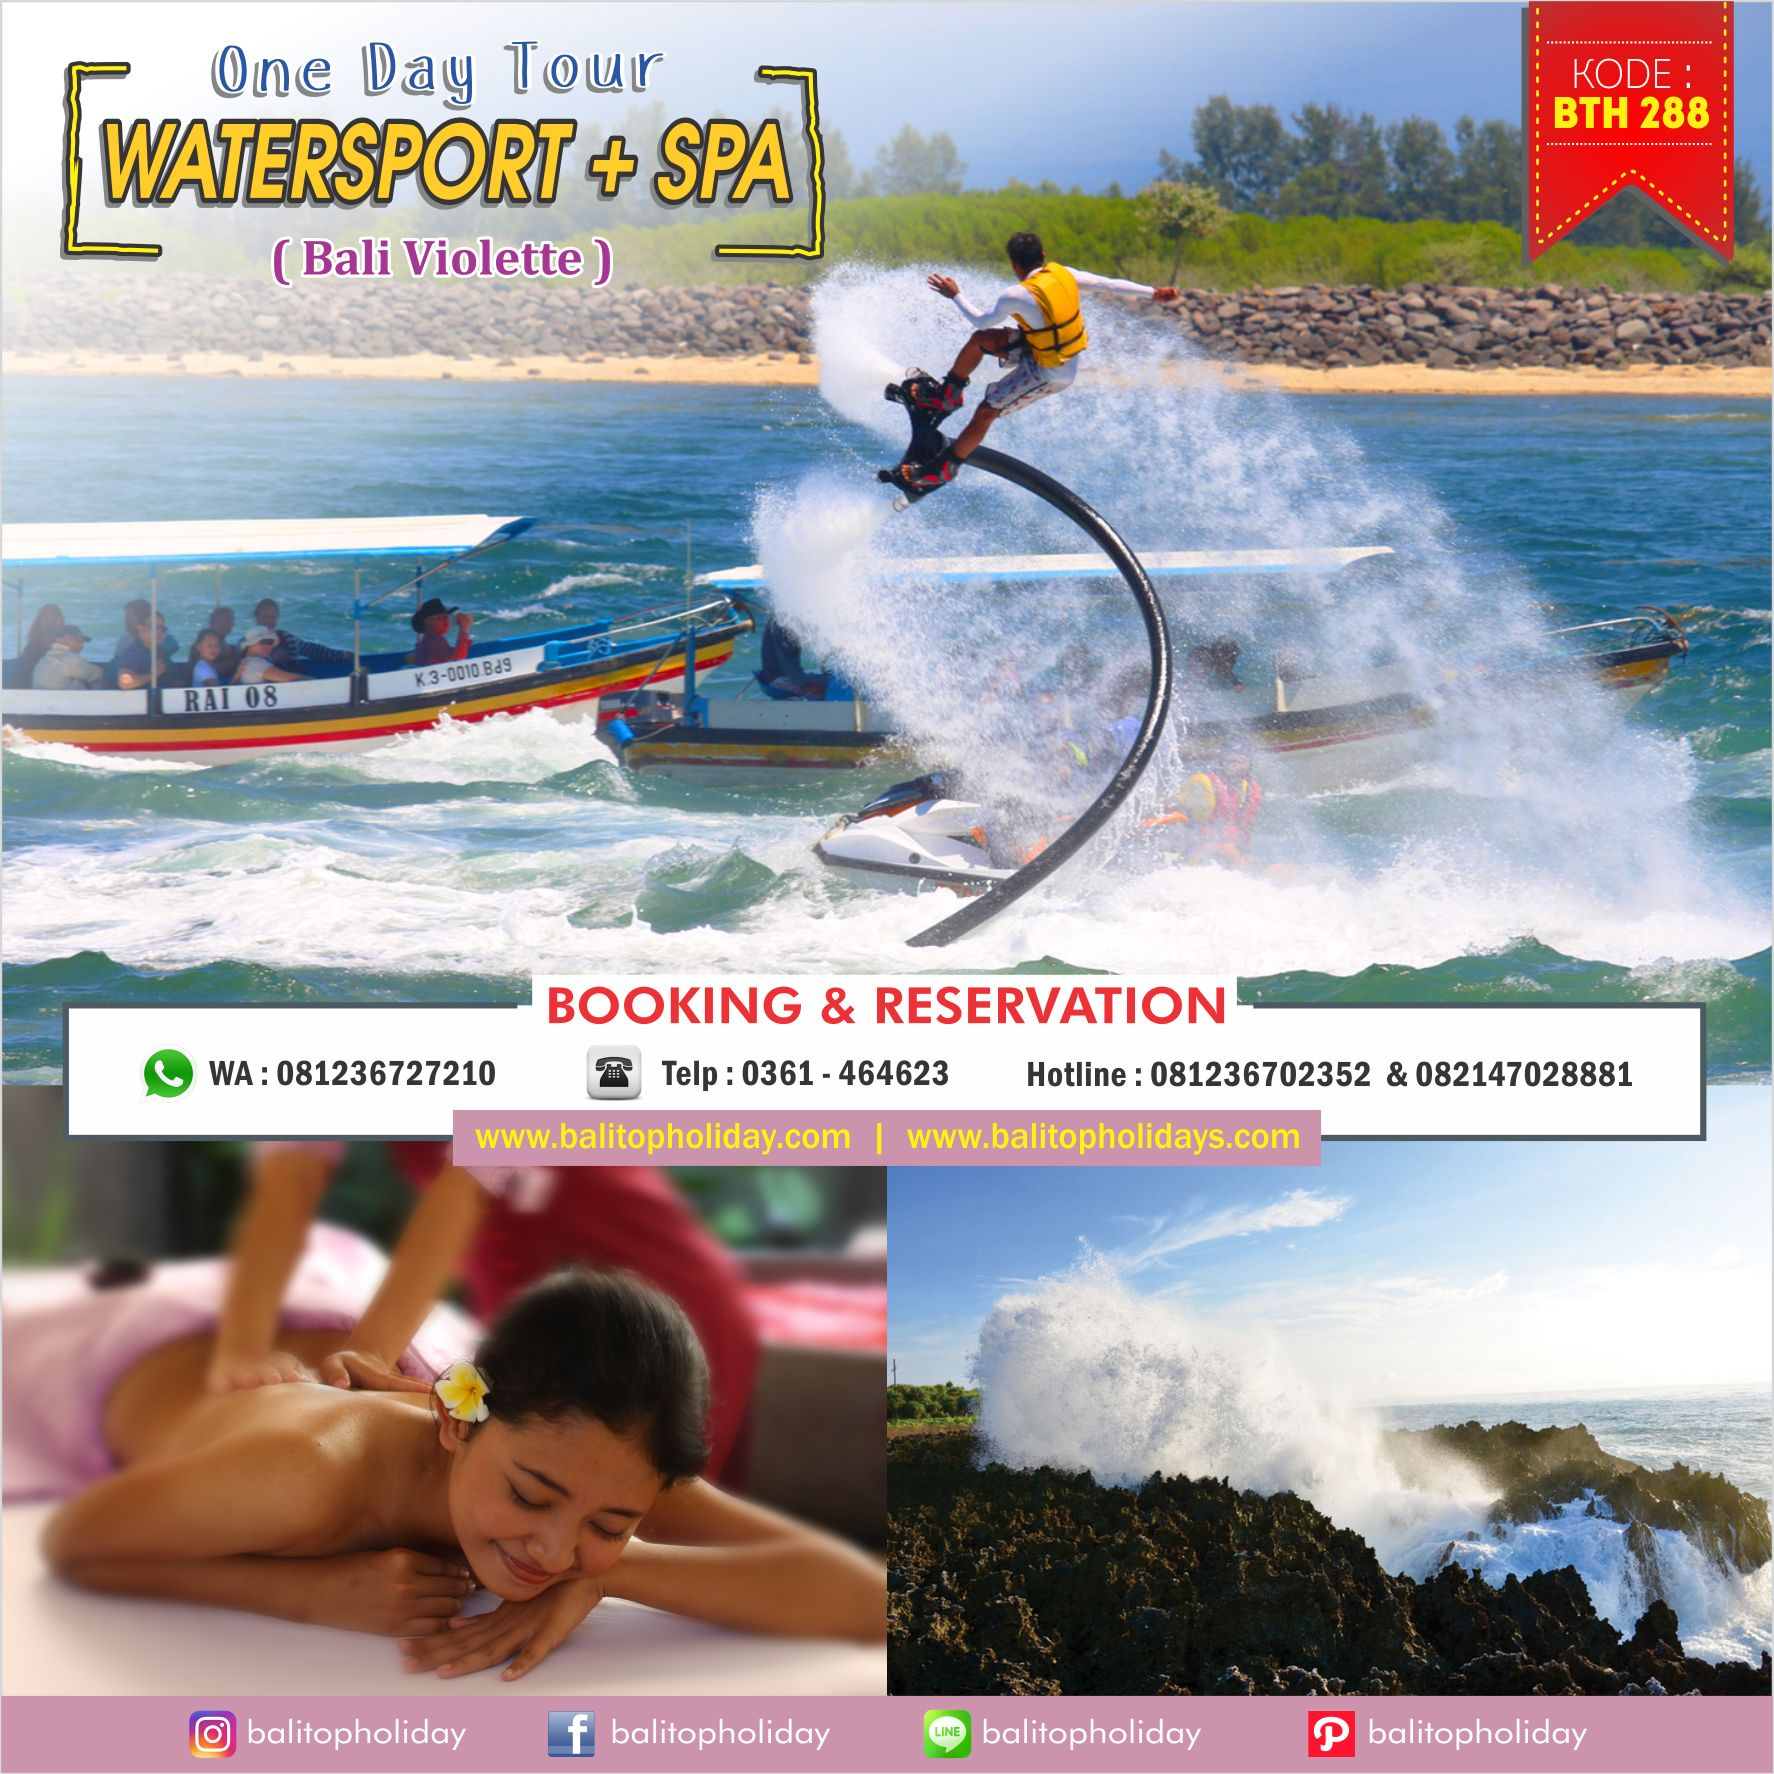 Watersport + Spa One Day Tour